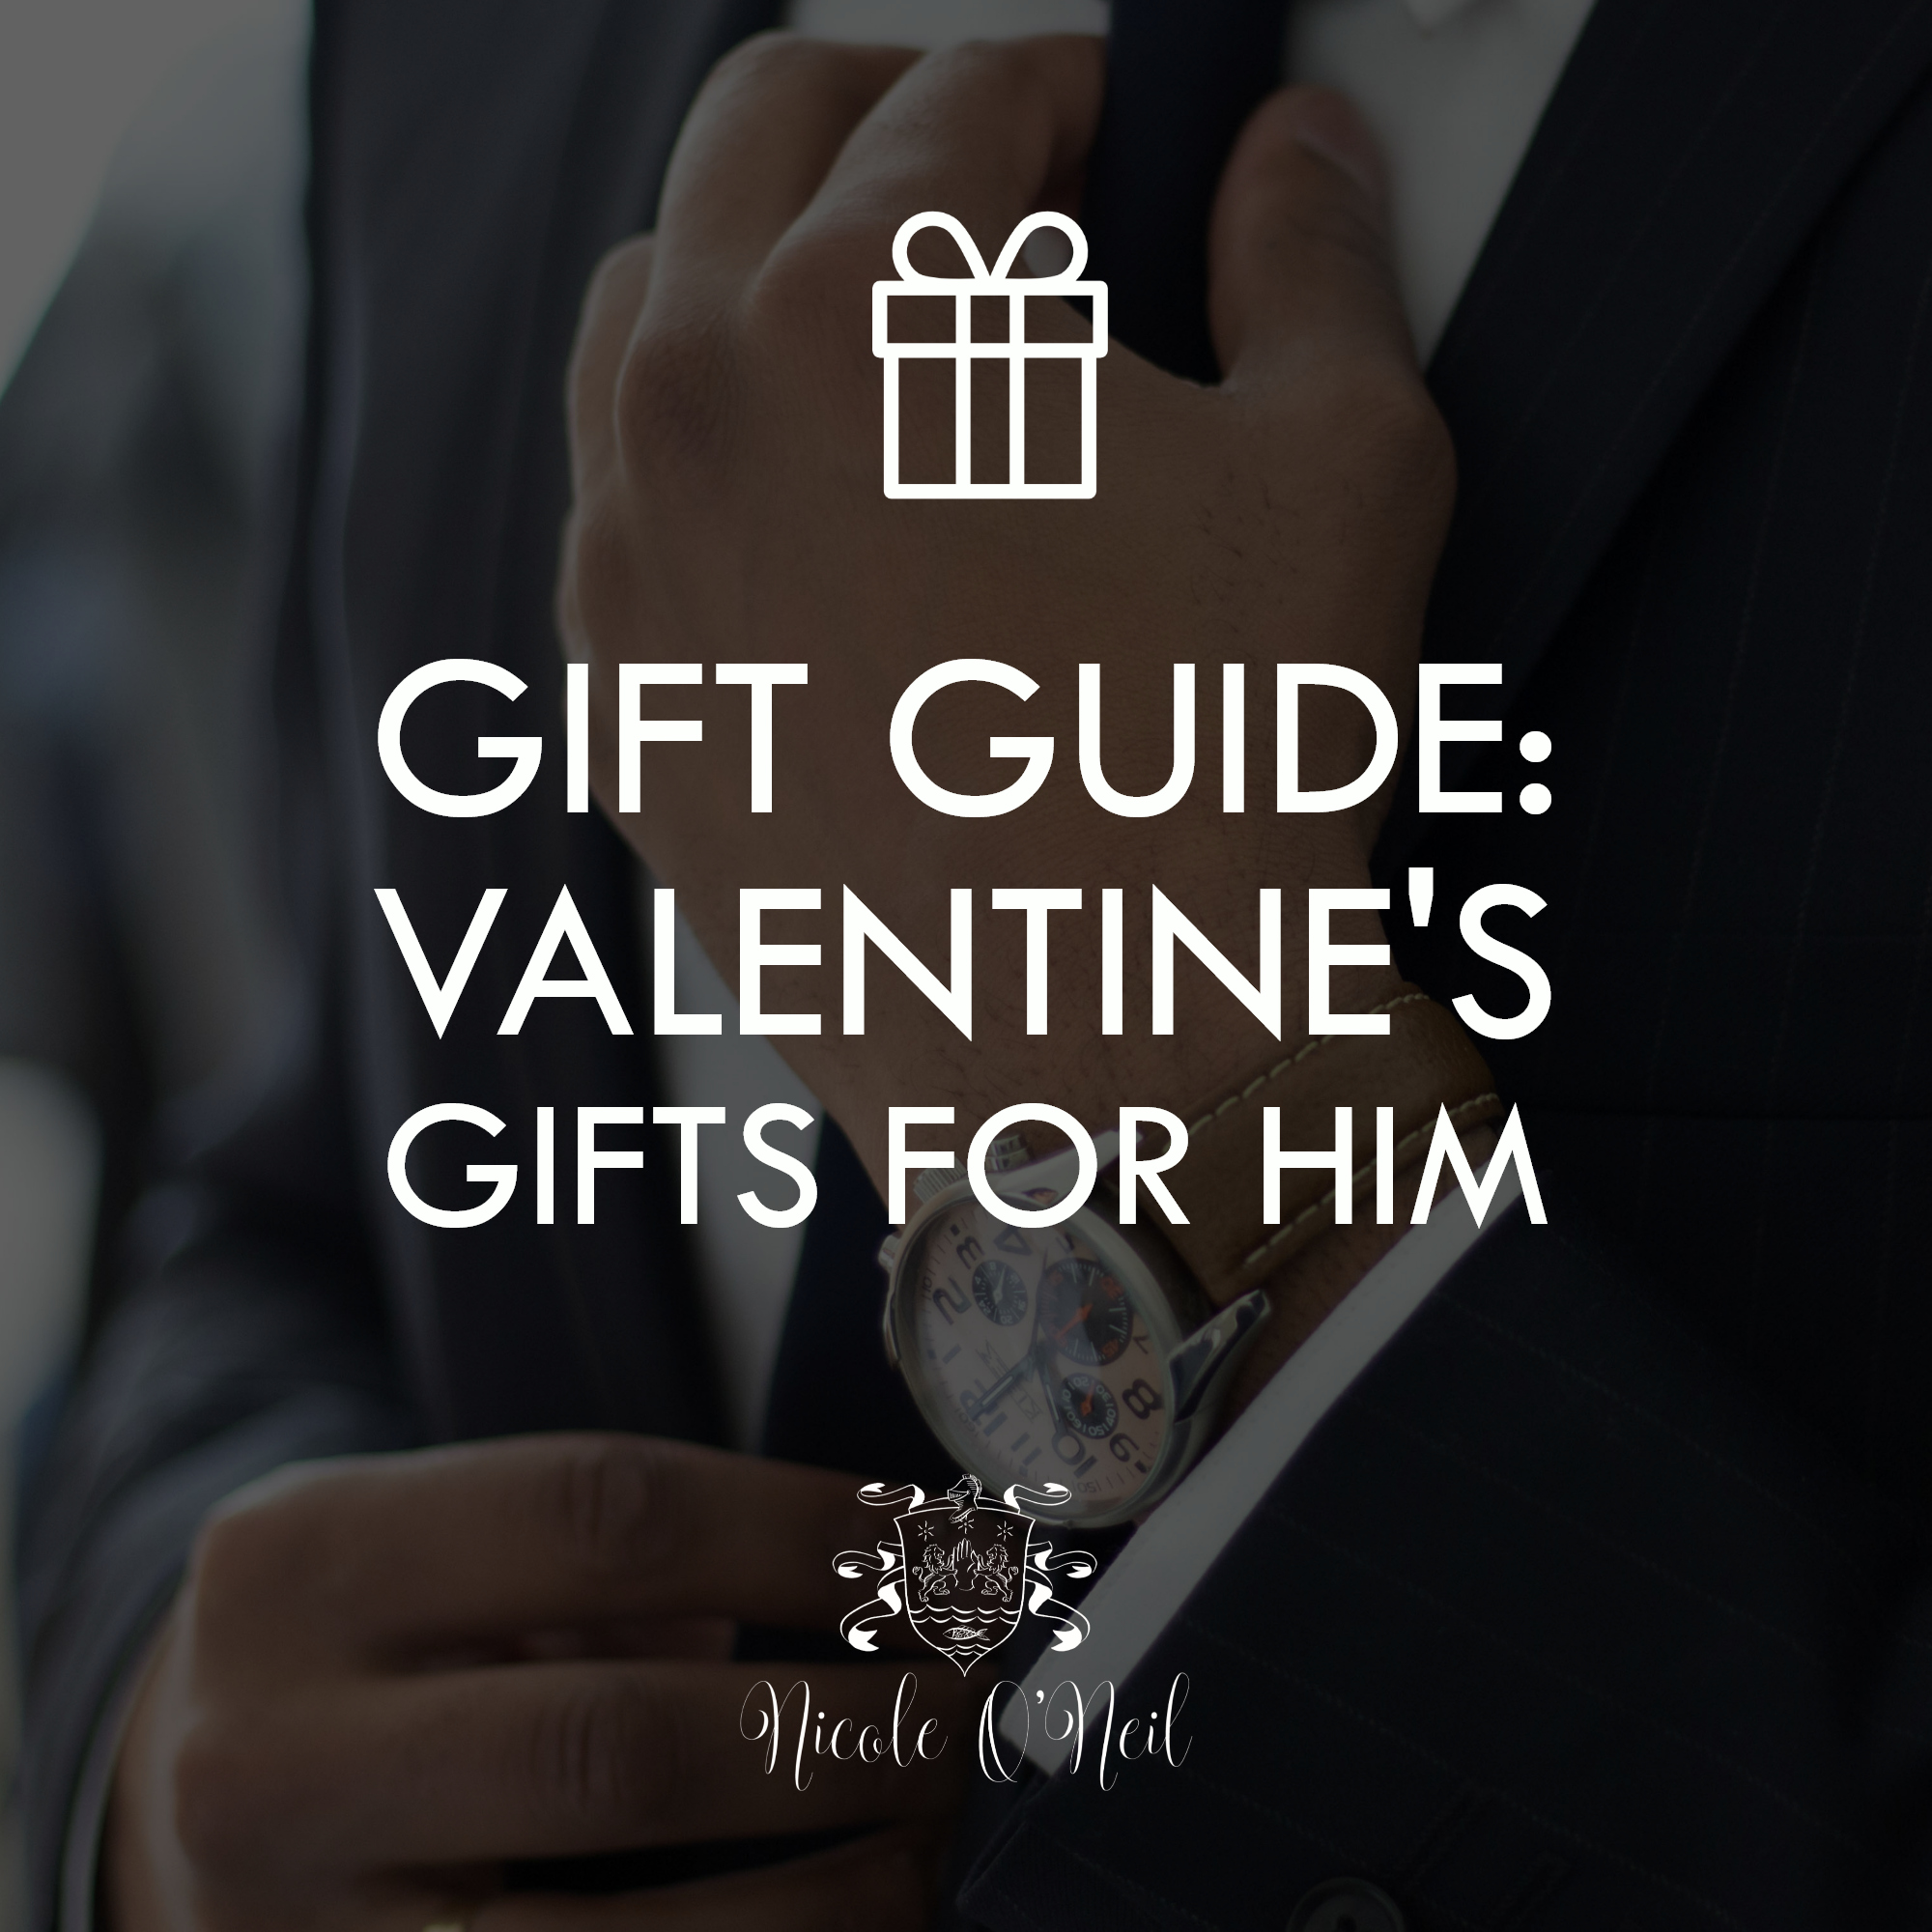 Need Valentine's Day Gift Ideas? This Valentine's Gift Guide for him features the perfect round up of gift ideas for your boyfriend, husband, fiance or any other guy in your life! Whether you're celebrating Valentine's Day, an anniversary or just want to spoil someone special, there's something for everyone.